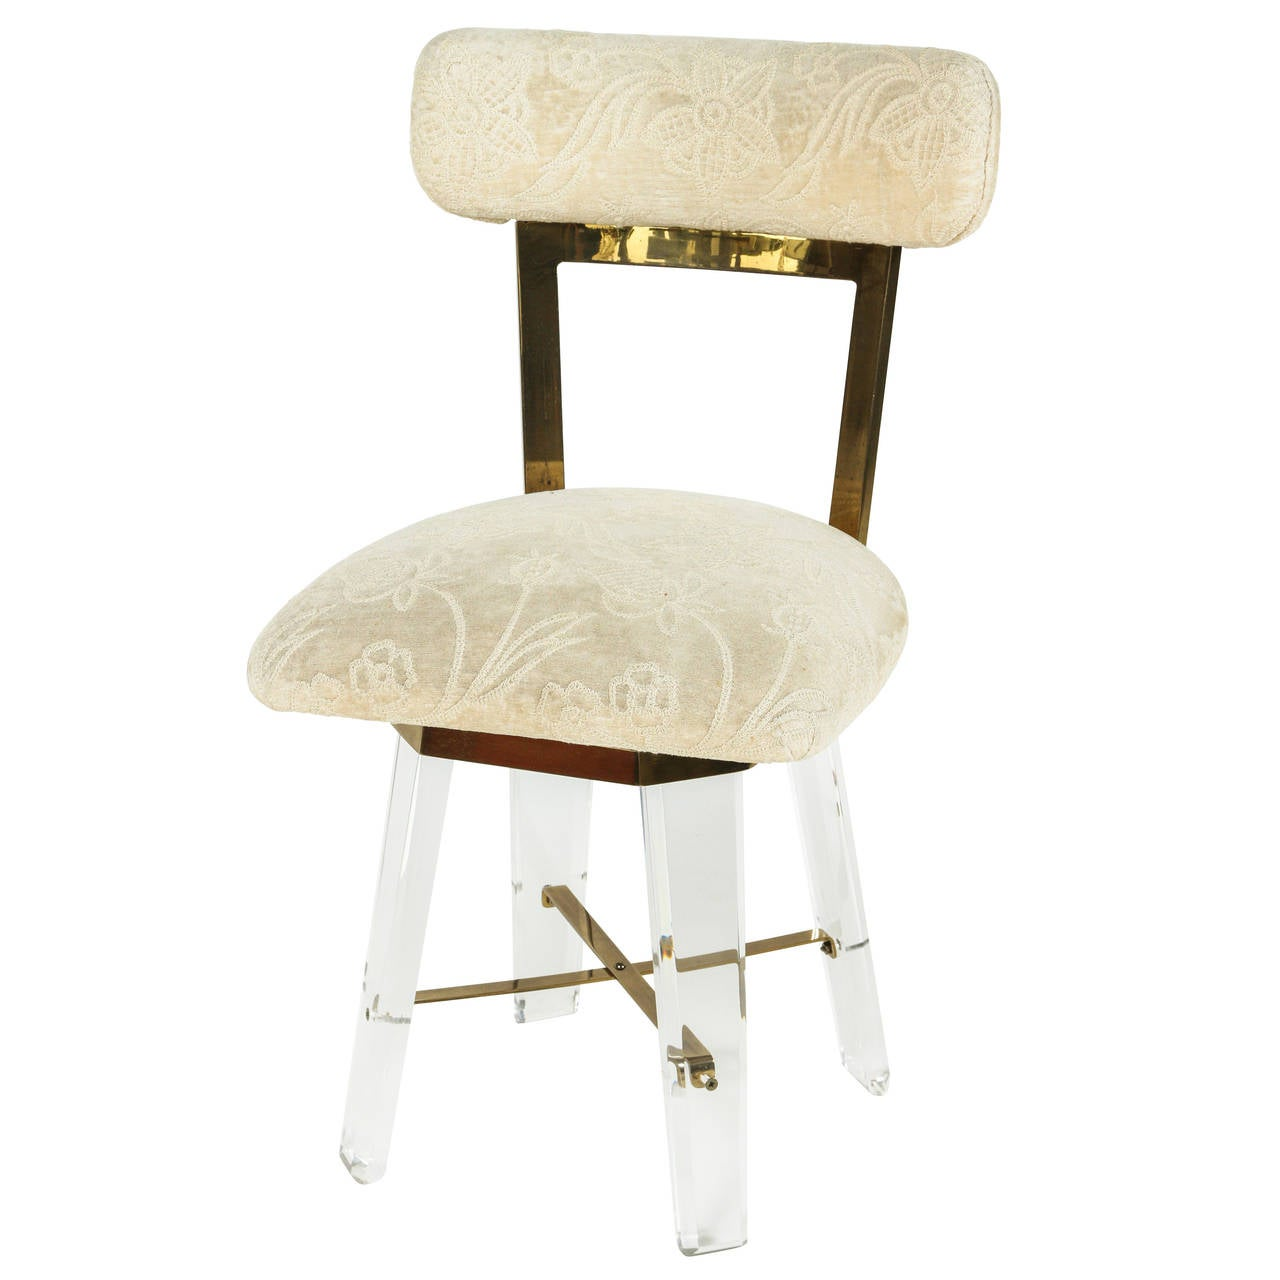 Elegant Lucite And Brass Swiveling Vanity Chair At 1stdibs